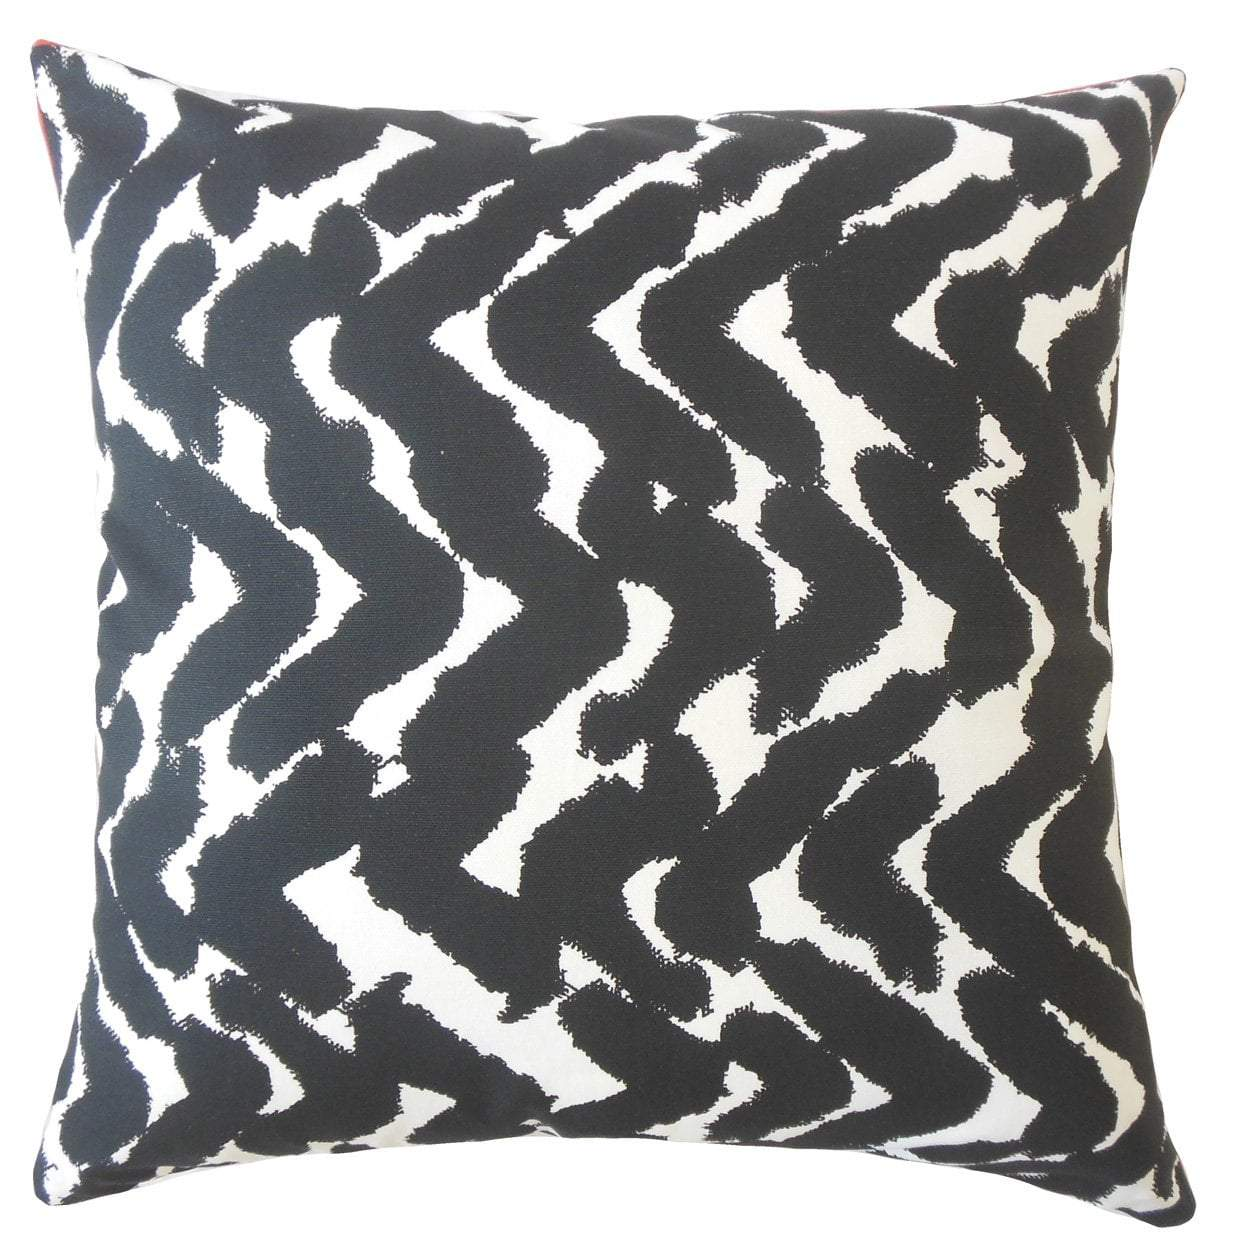 Hutton Throw Pillow Cover